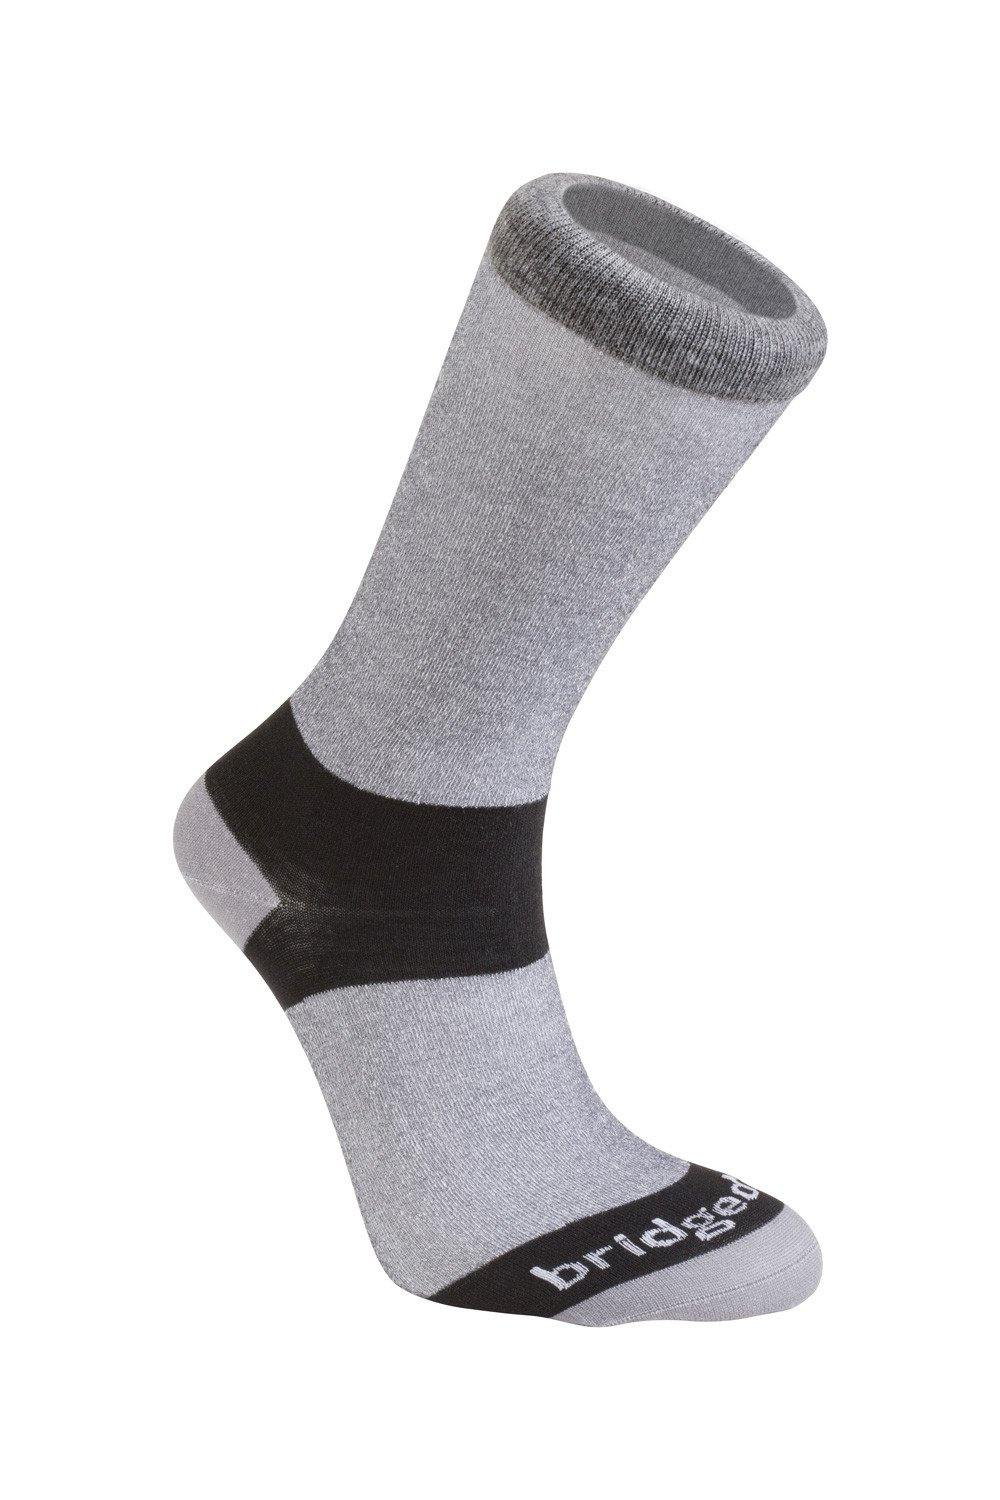 Bridgedale Men's Coolmax Liner 2 pack - Grey